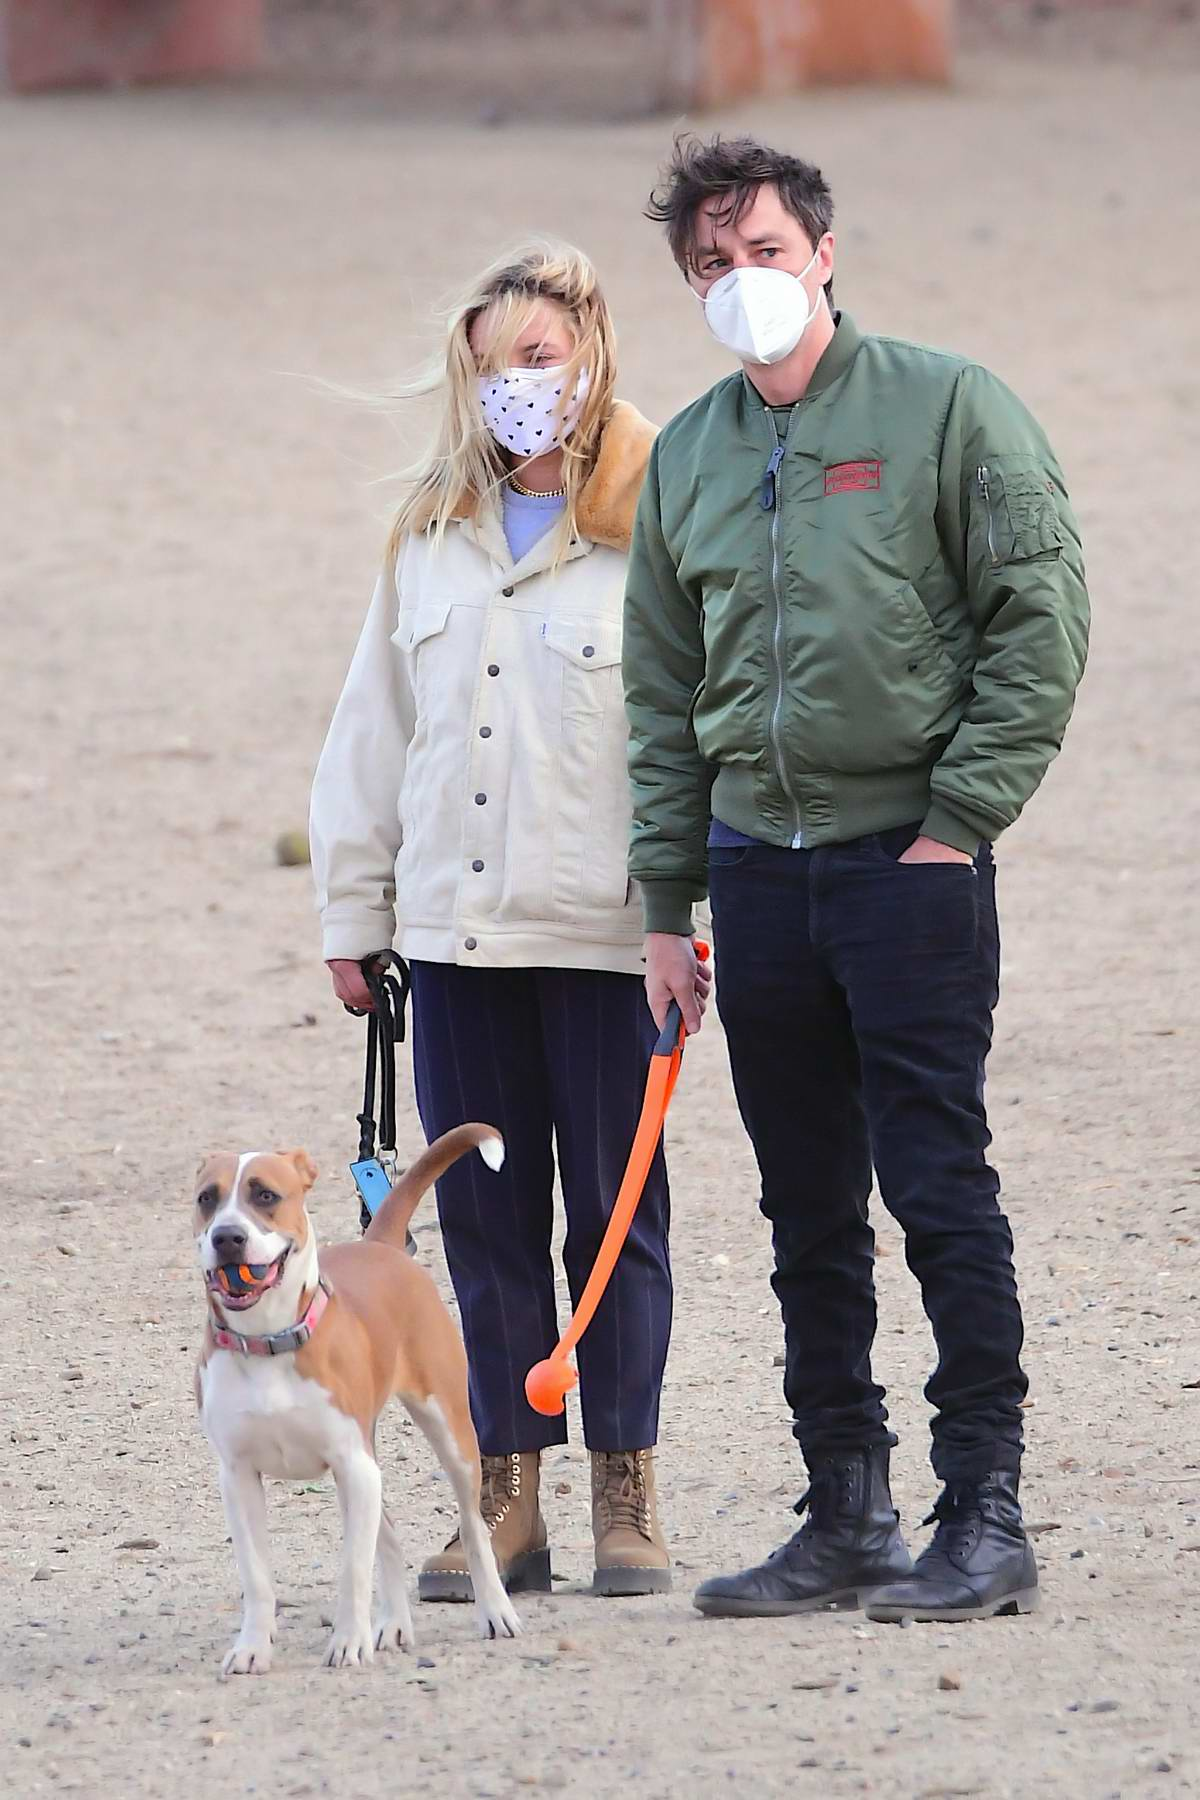 Florence Pugh and Zach Braff were spotted enjoying an early morning trip to the dog park in Los Angeles